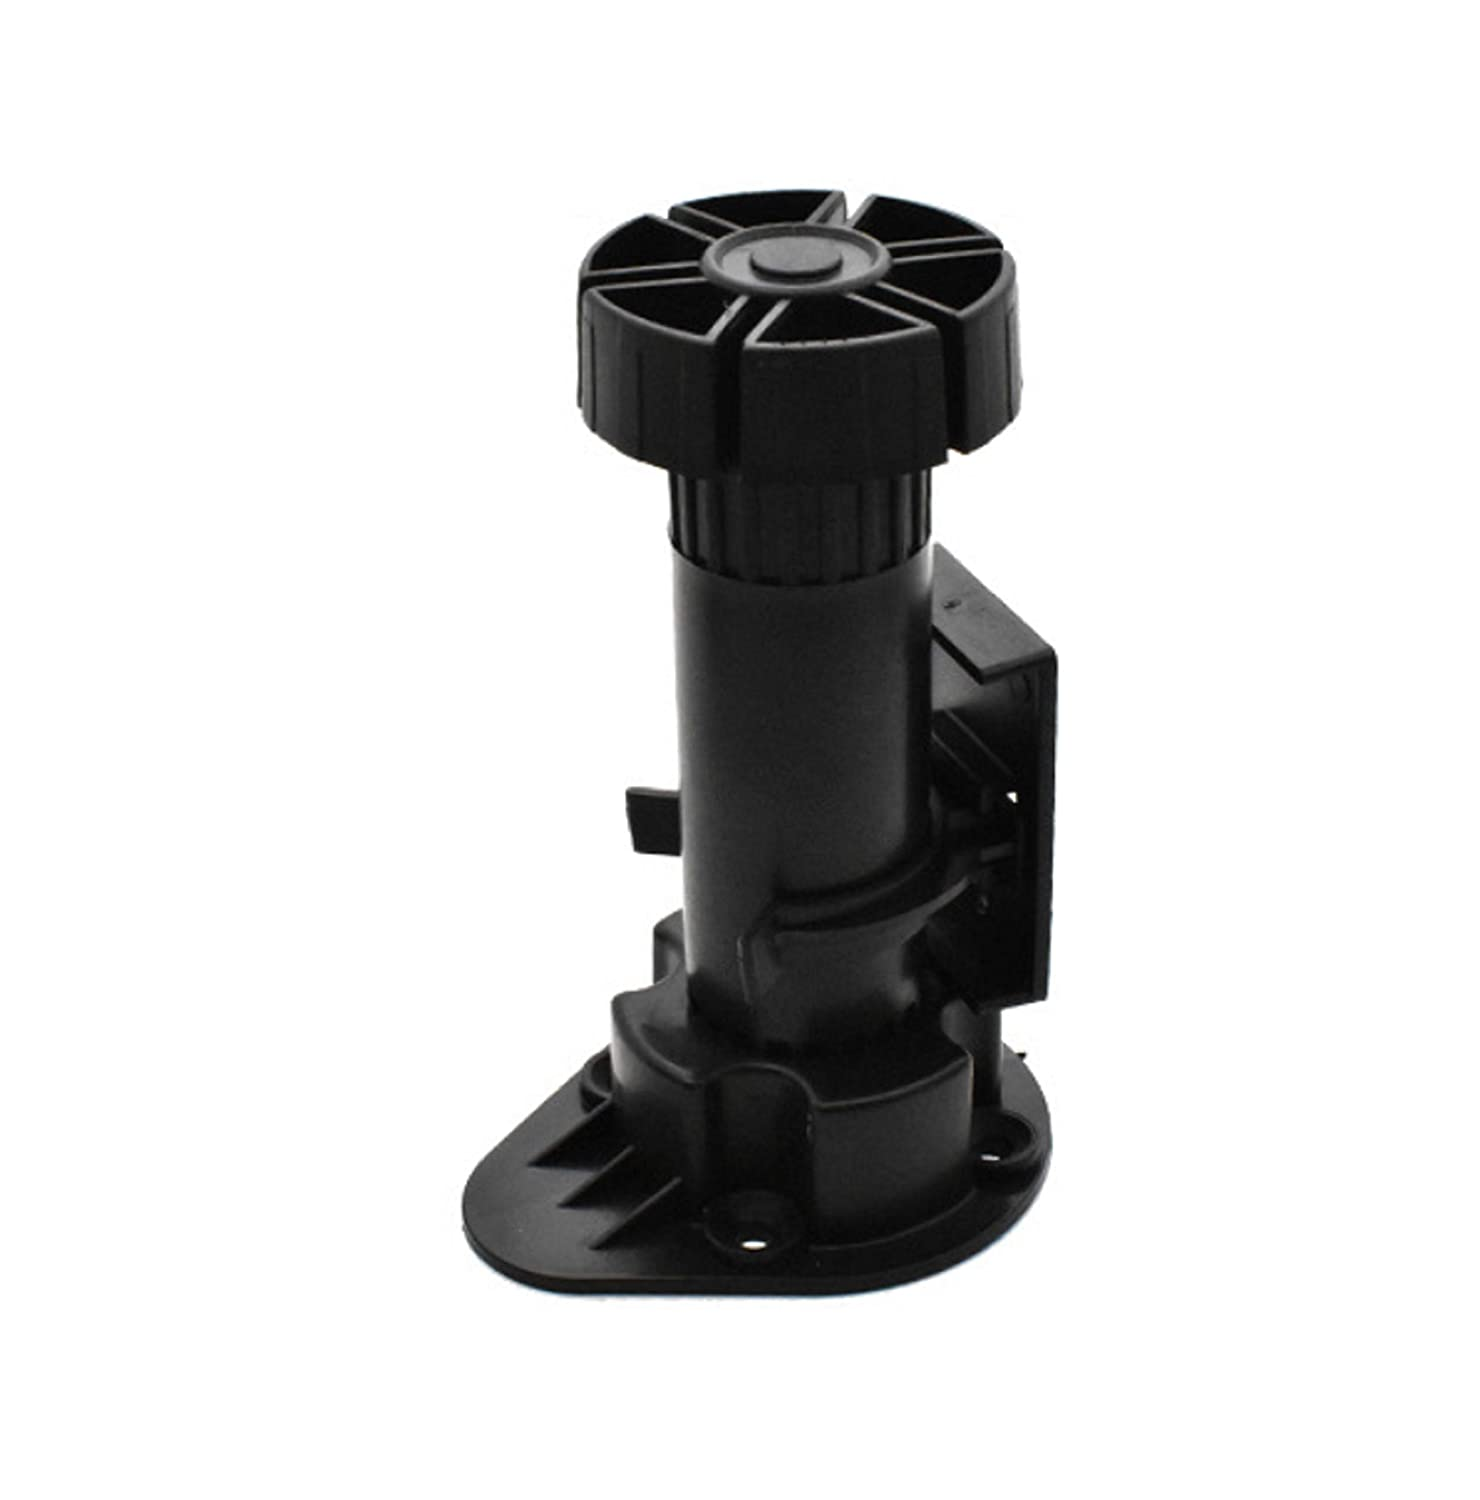 """Xntun 12 Pack Black Cabinet Leveler Legs Adjustable Furniture Legs Adjusts from 3-7/8"""" to 5-1/8"""", for Furniture, Cabinets Ect"""